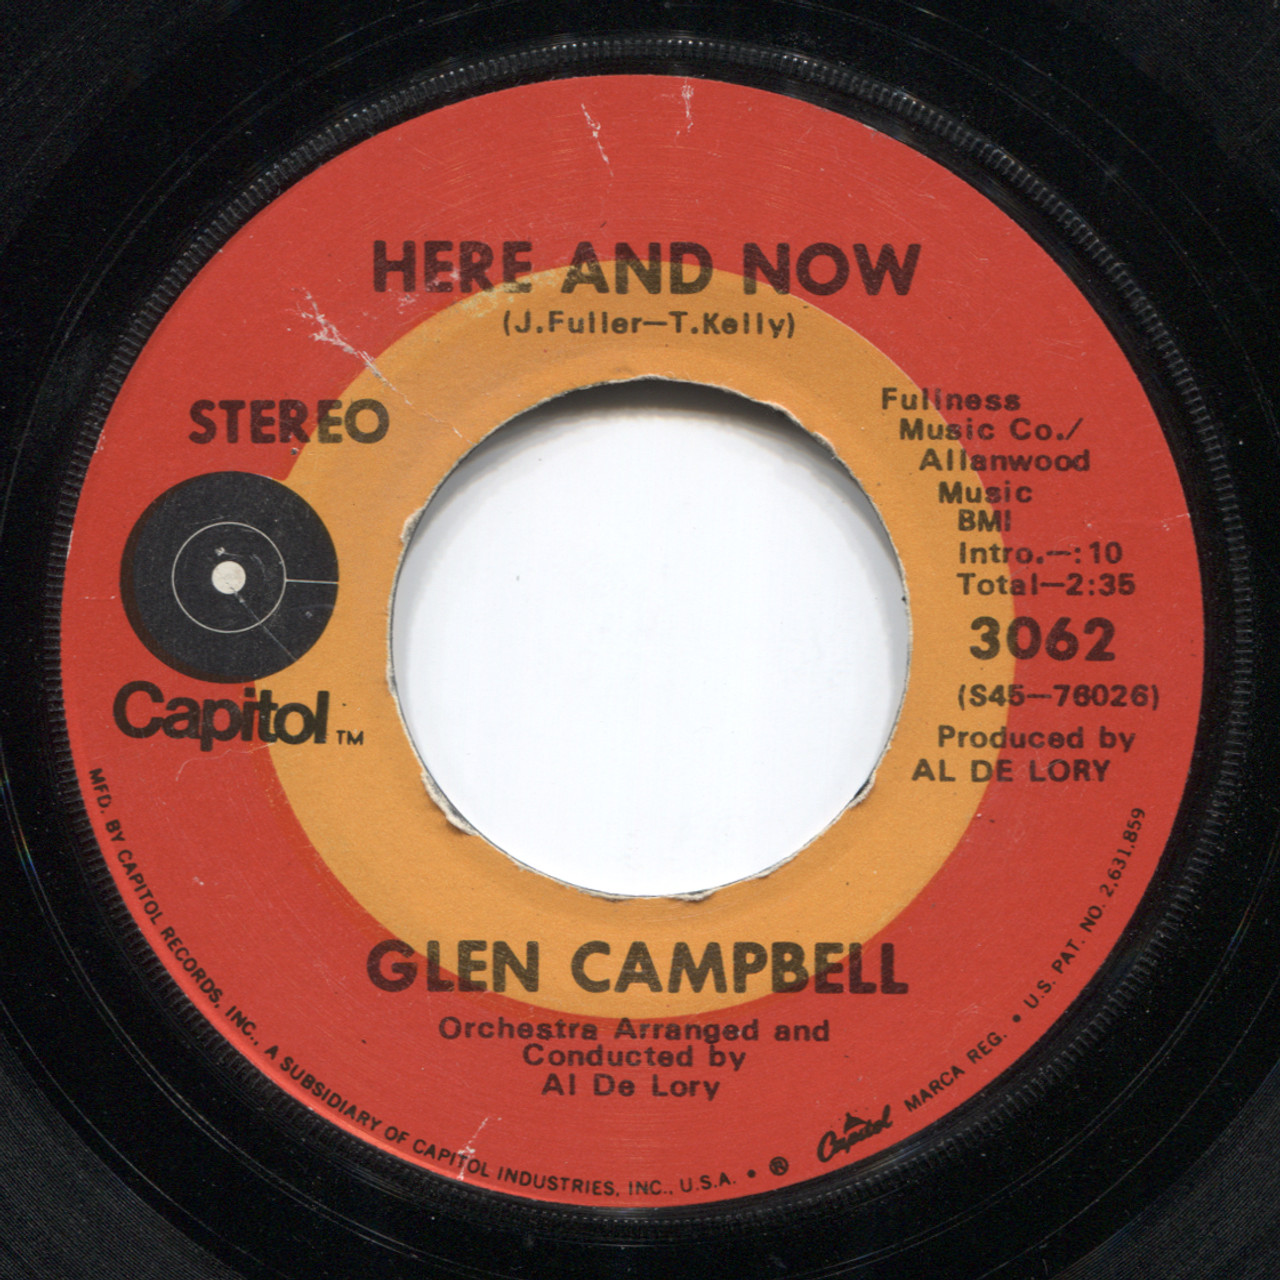 Glen Campbell: Here and Now / Dream Baby (How Long Must I Dream) - 7